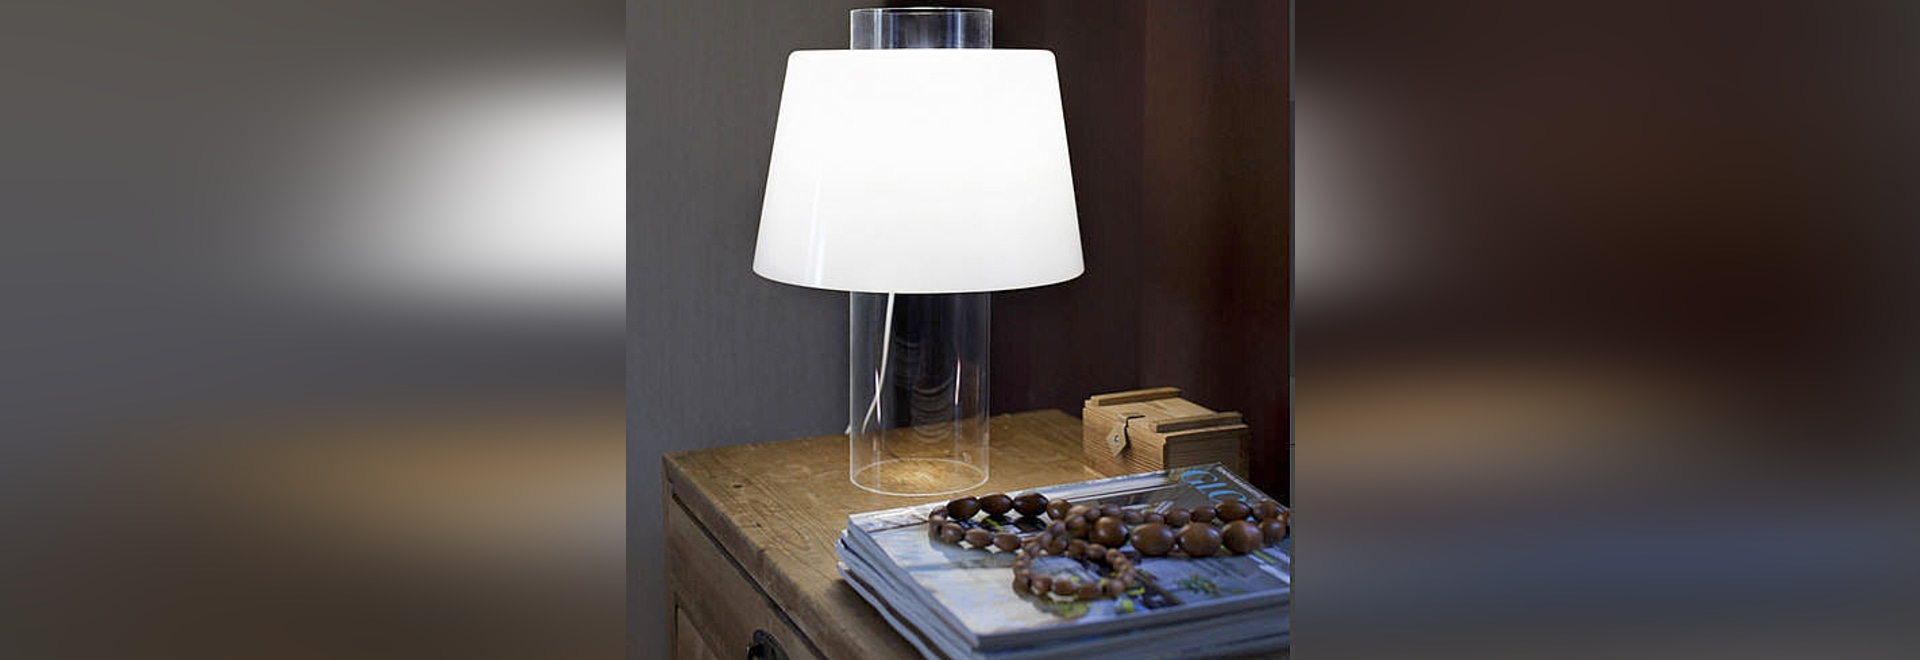 Modern art table lamp by yki nummi for innolux innolux modern art table lamp by yki nummi for innolux geotapseo Gallery